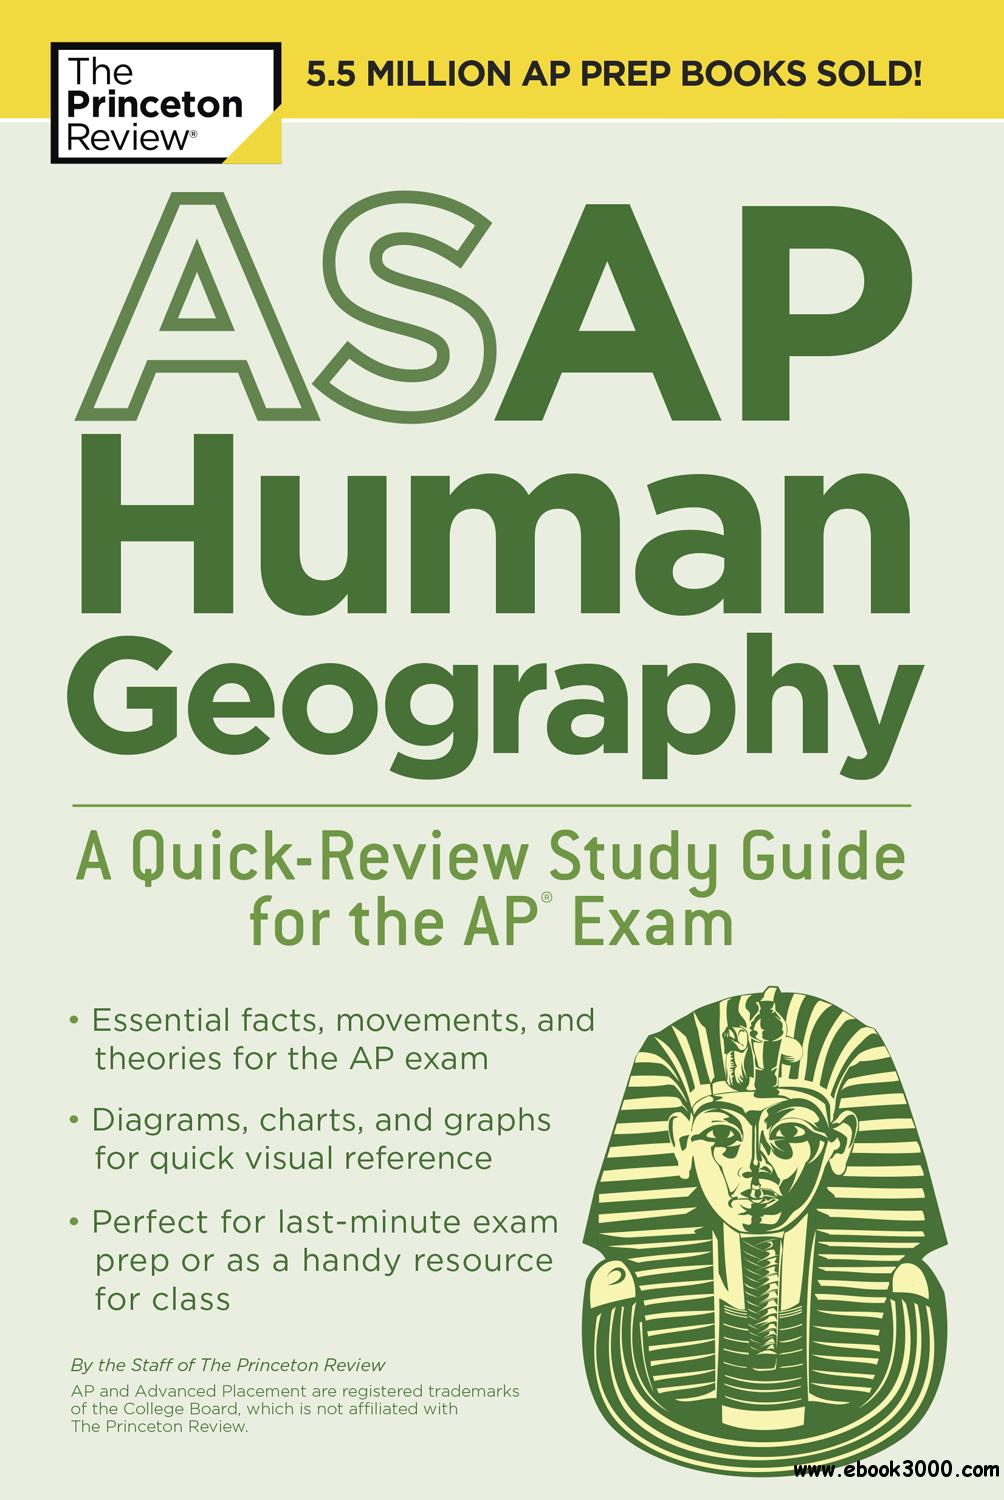 Free ap study guide ebook array asap human geography a quick review study guide for the ap exam rh ebook3000 fandeluxe Image collections